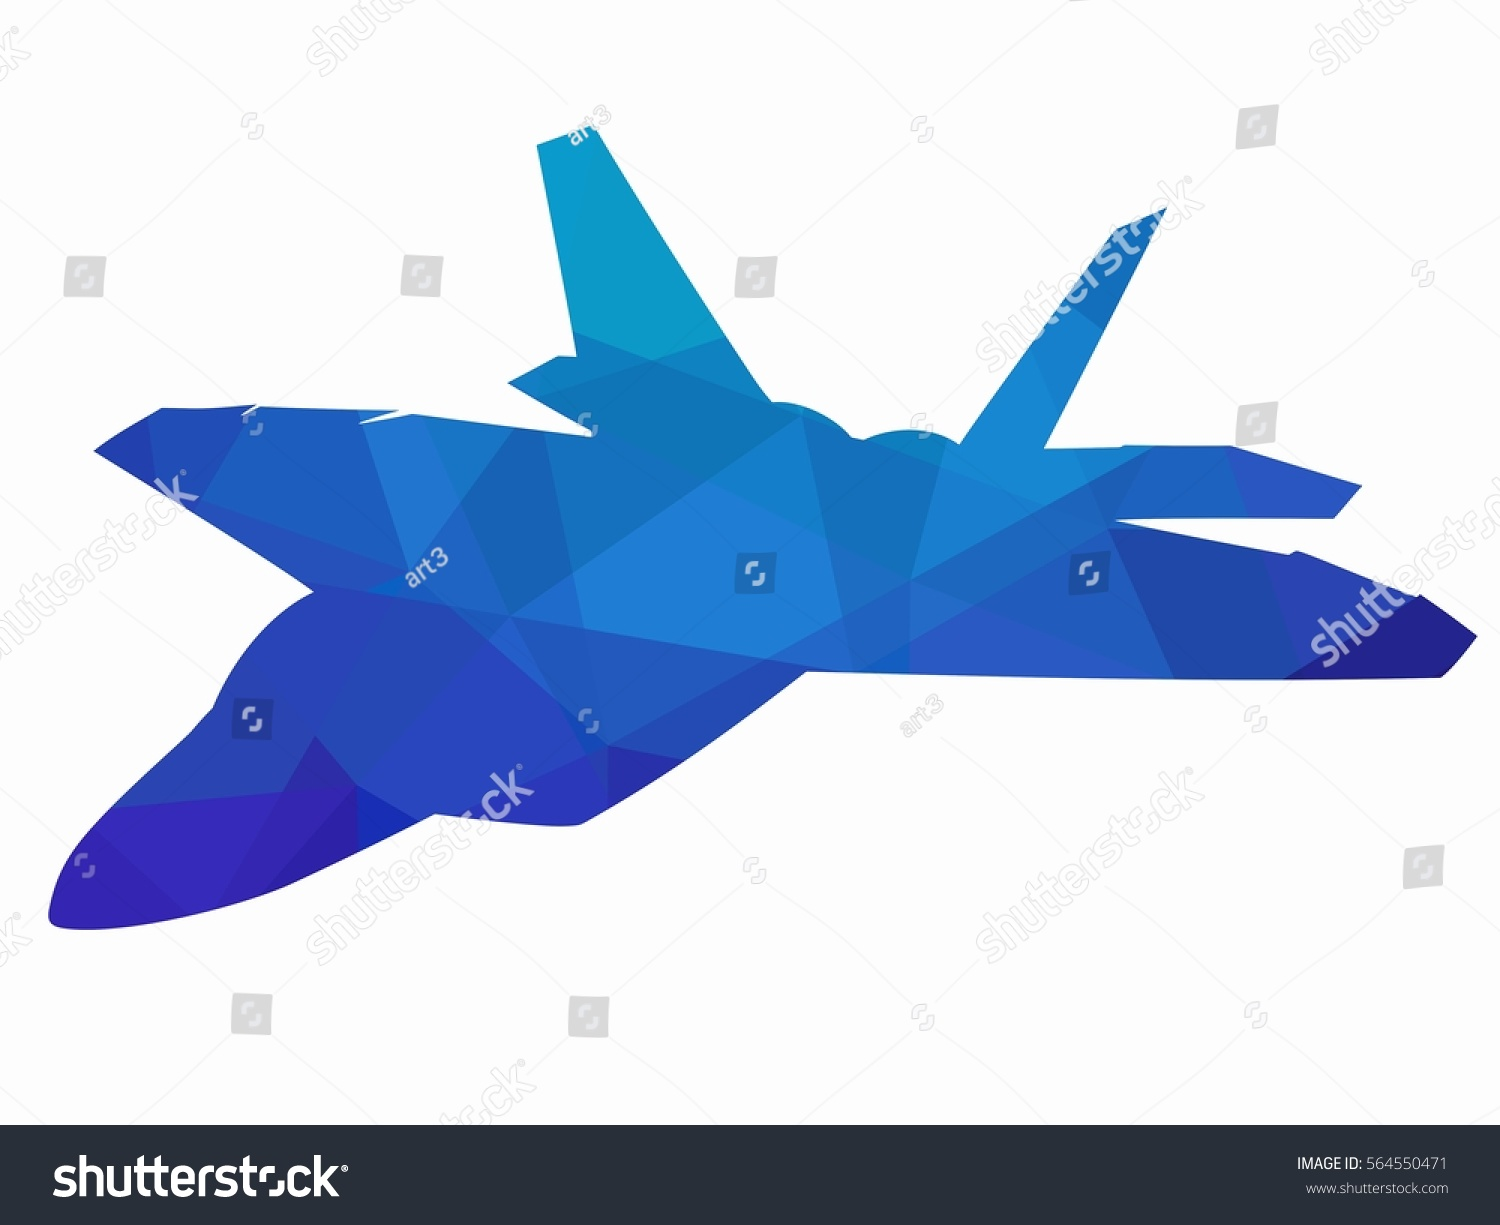 Silhouette Flying Fighter Creative Triangular Drawing Stock Vector